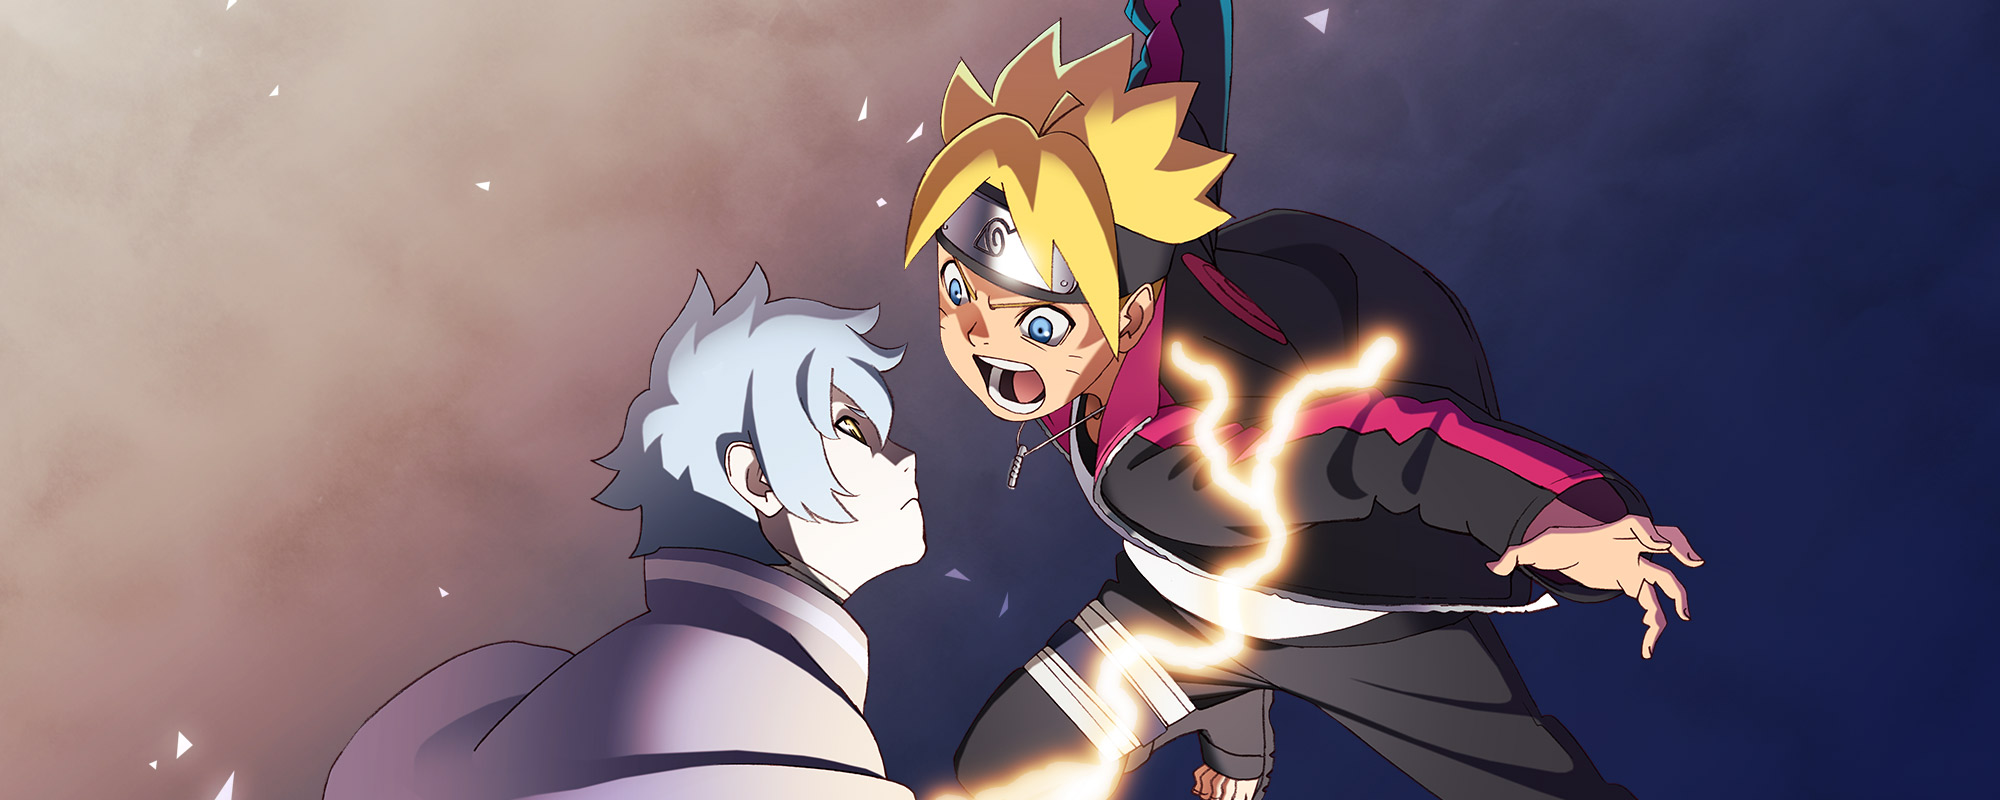 Boruto Chapter 50 Release Date and Manga Read Online